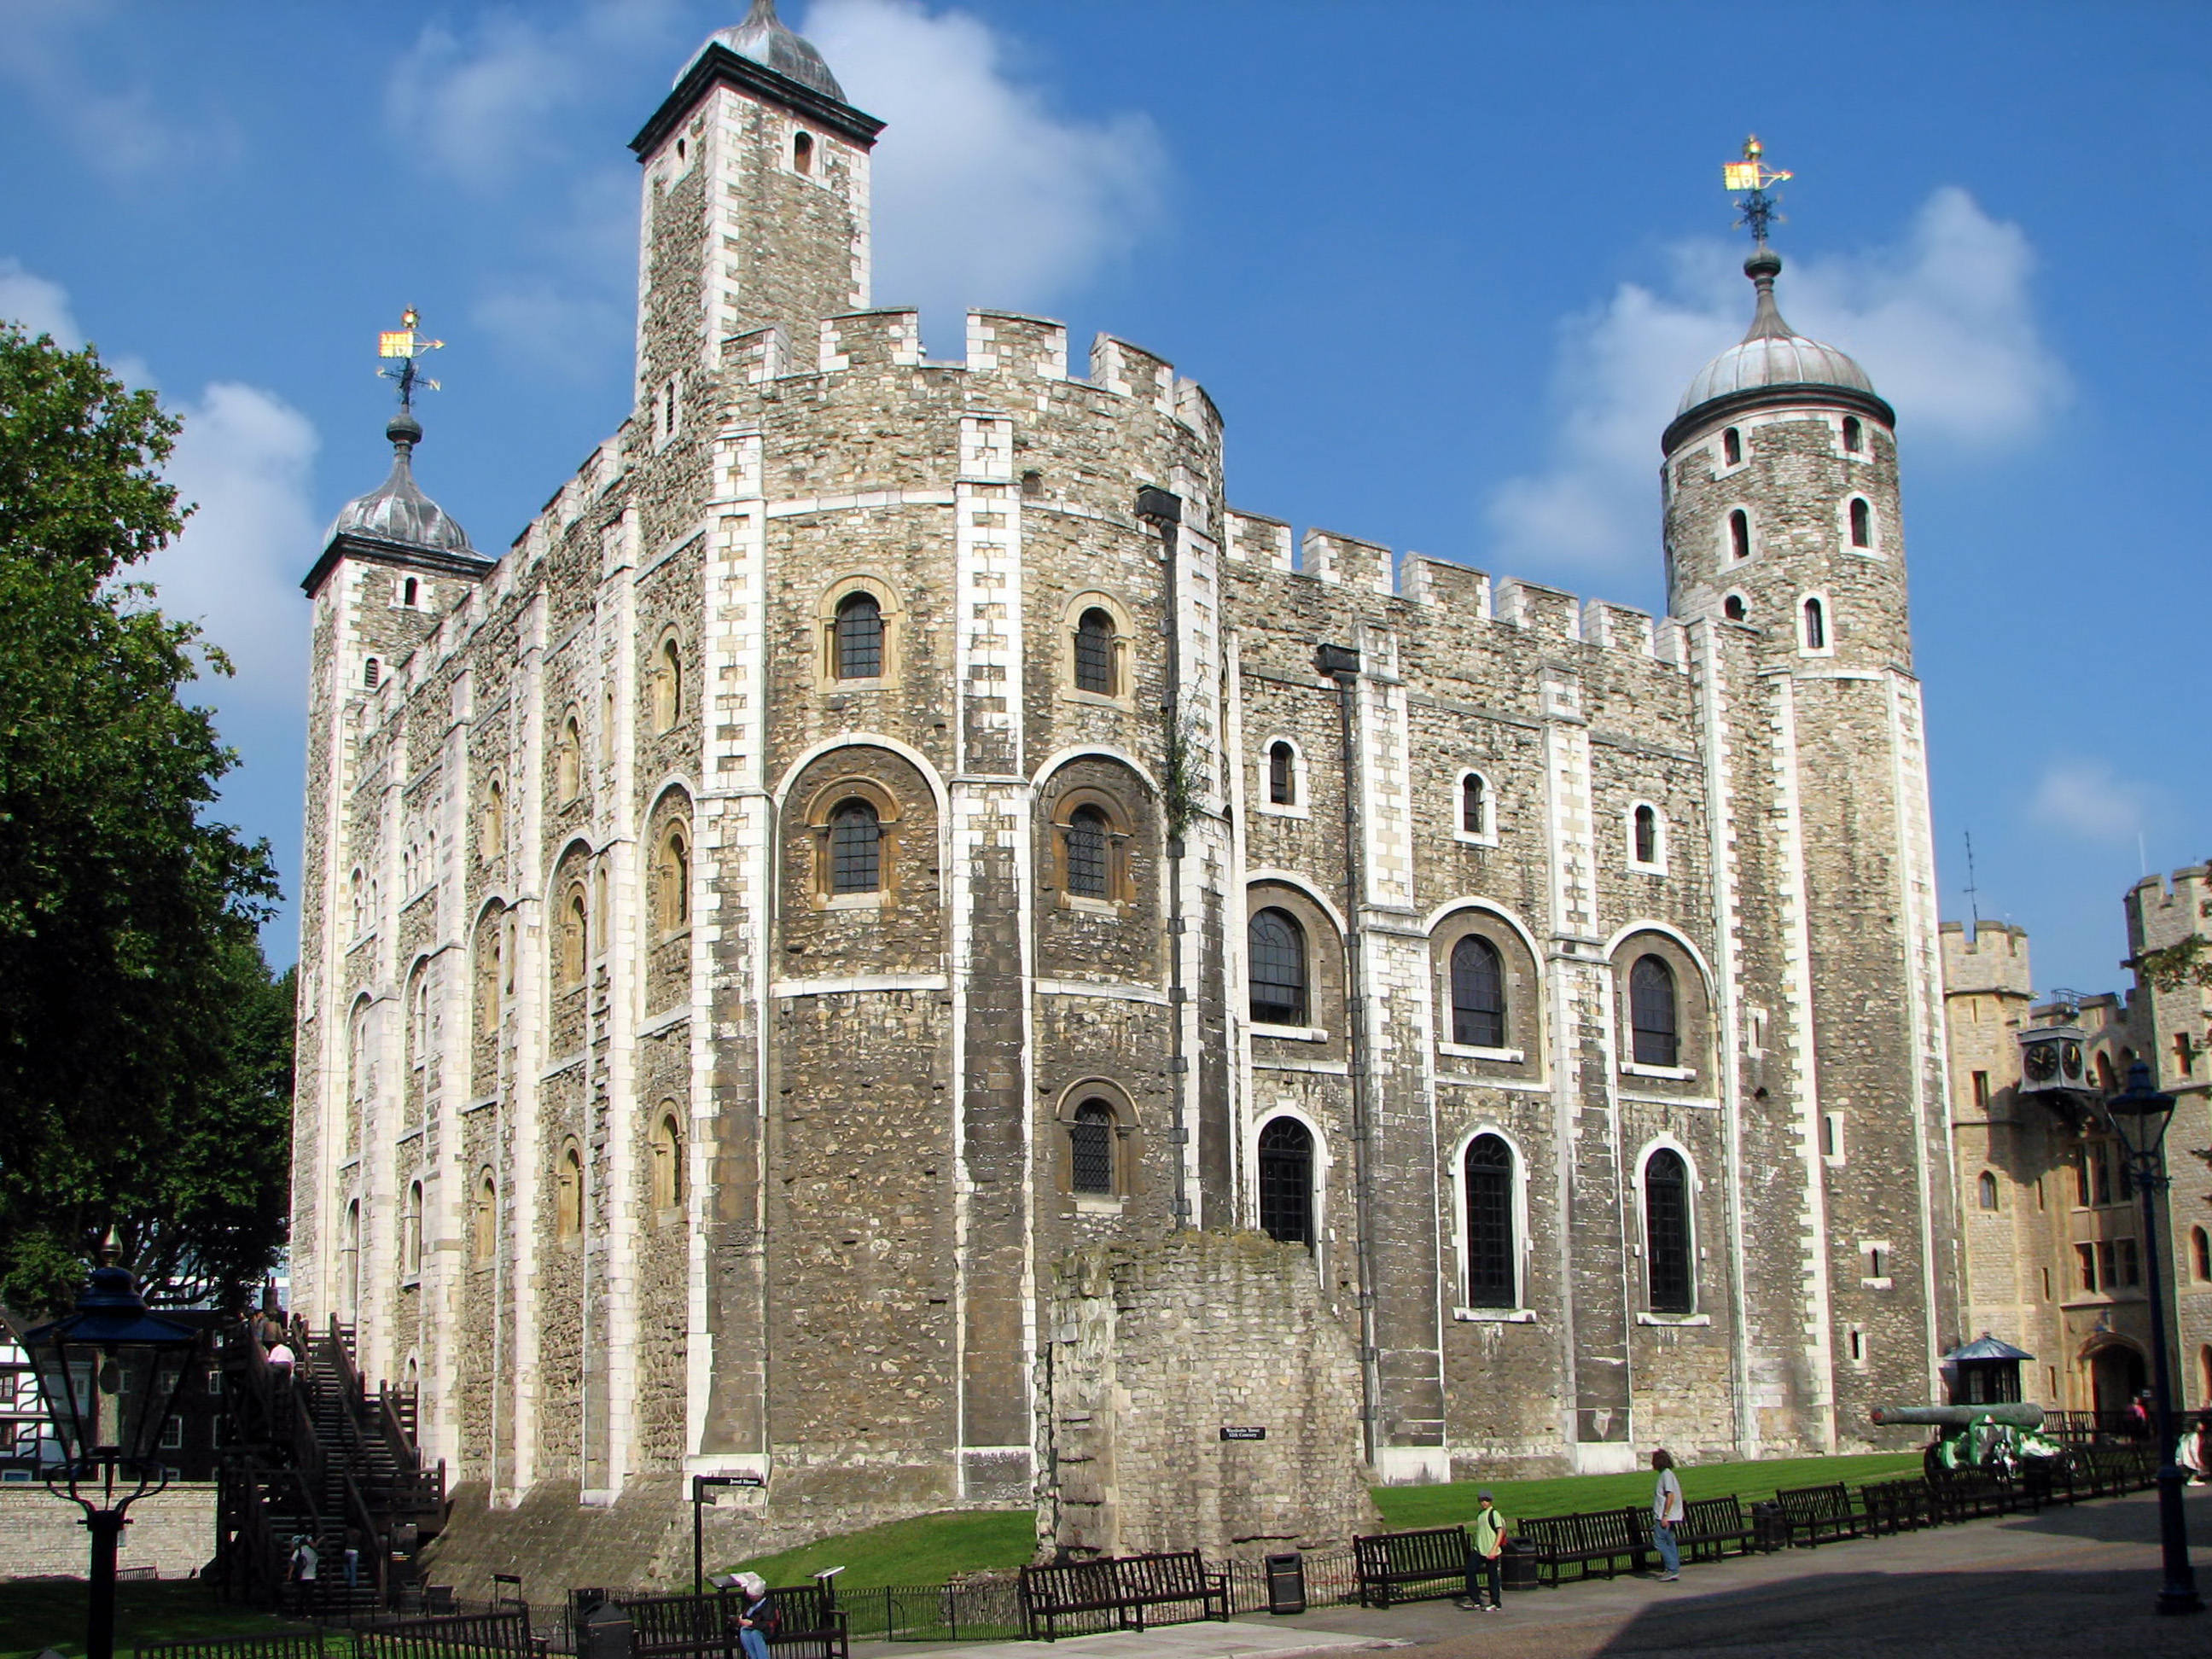 Tower of London Facts, Facts about Tower of London